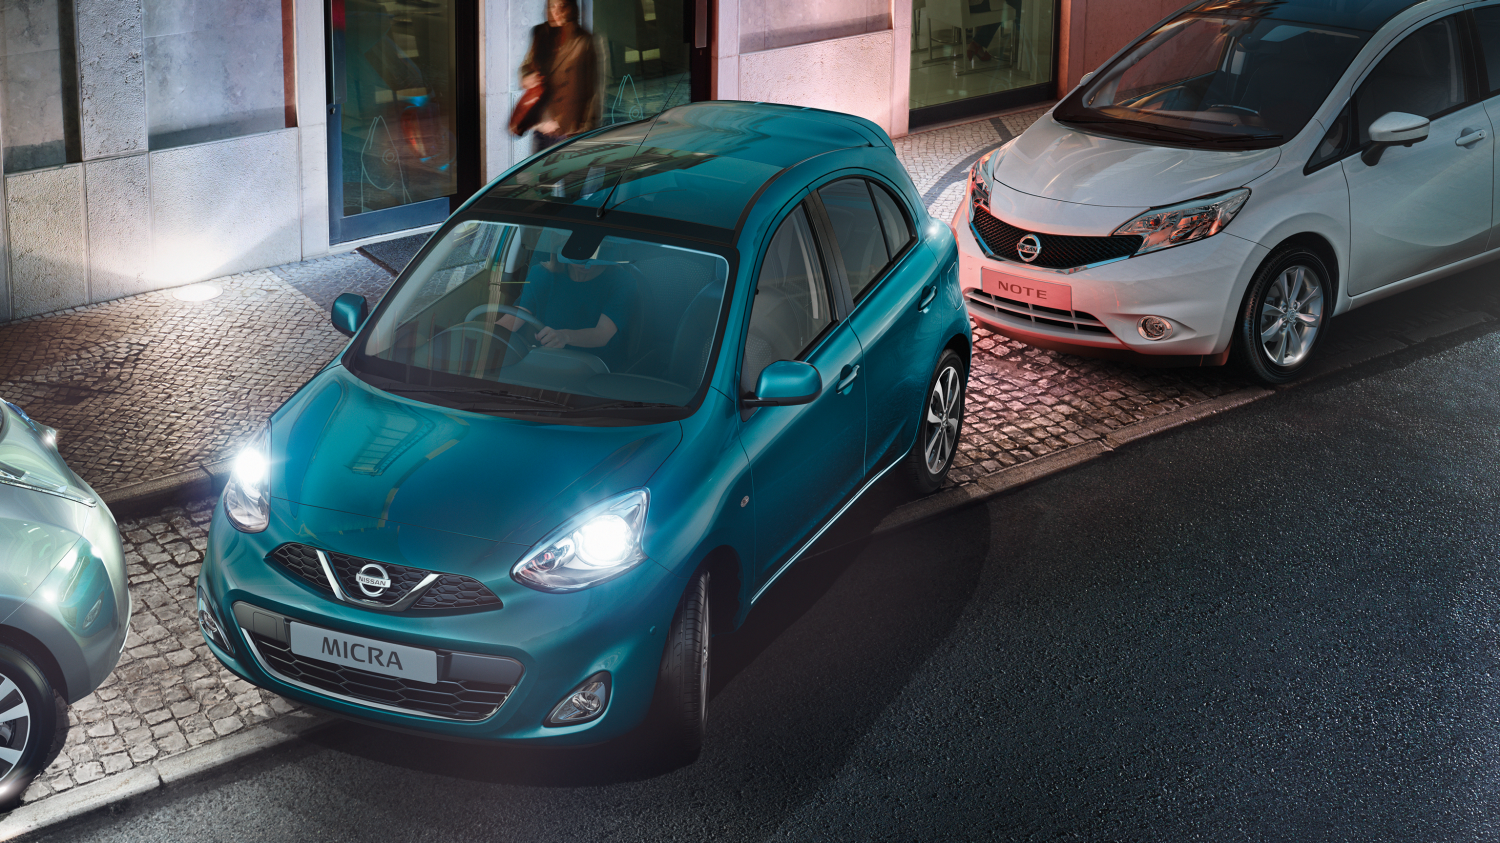 Nissan Micra | Small turning circle